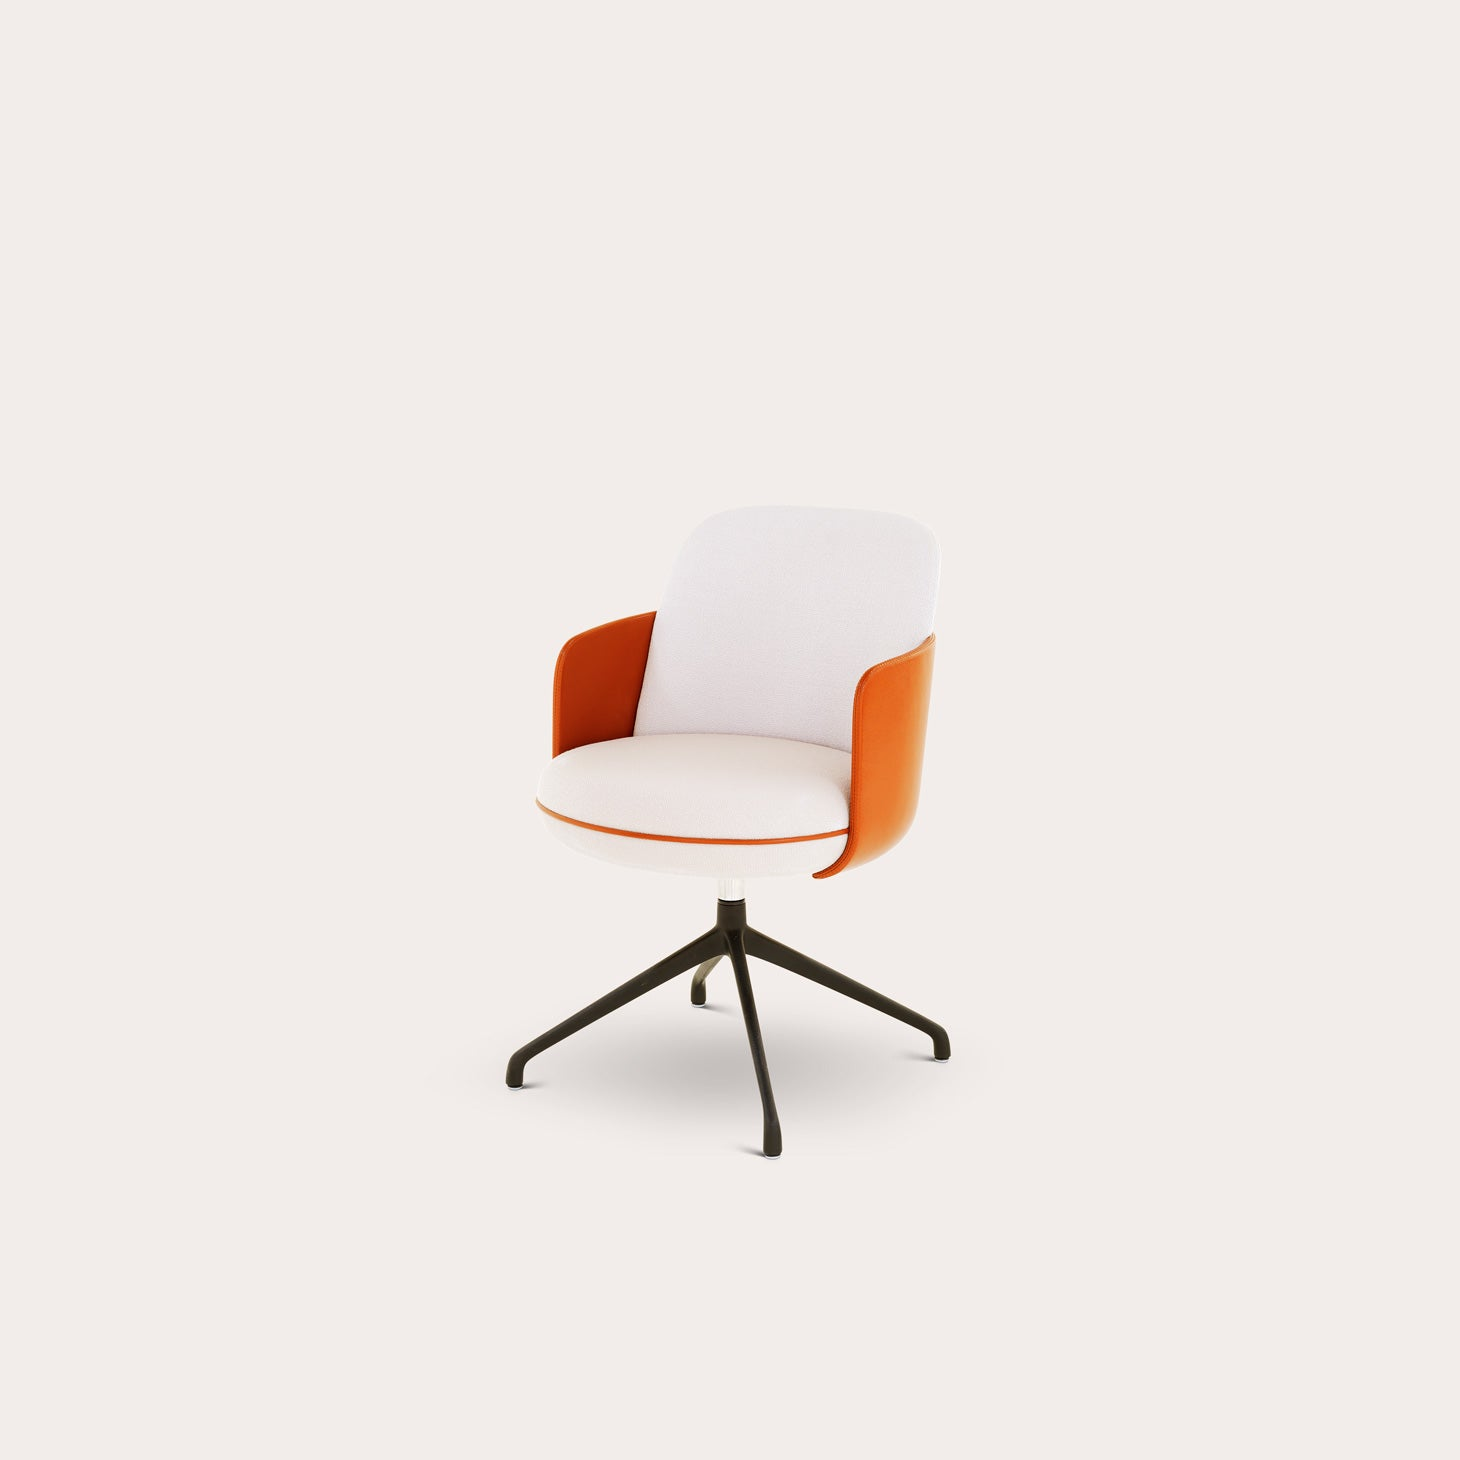 Merwyn Task Chair Seating Sebastian Herkner Designer Furniture Sku: 758-120-10060